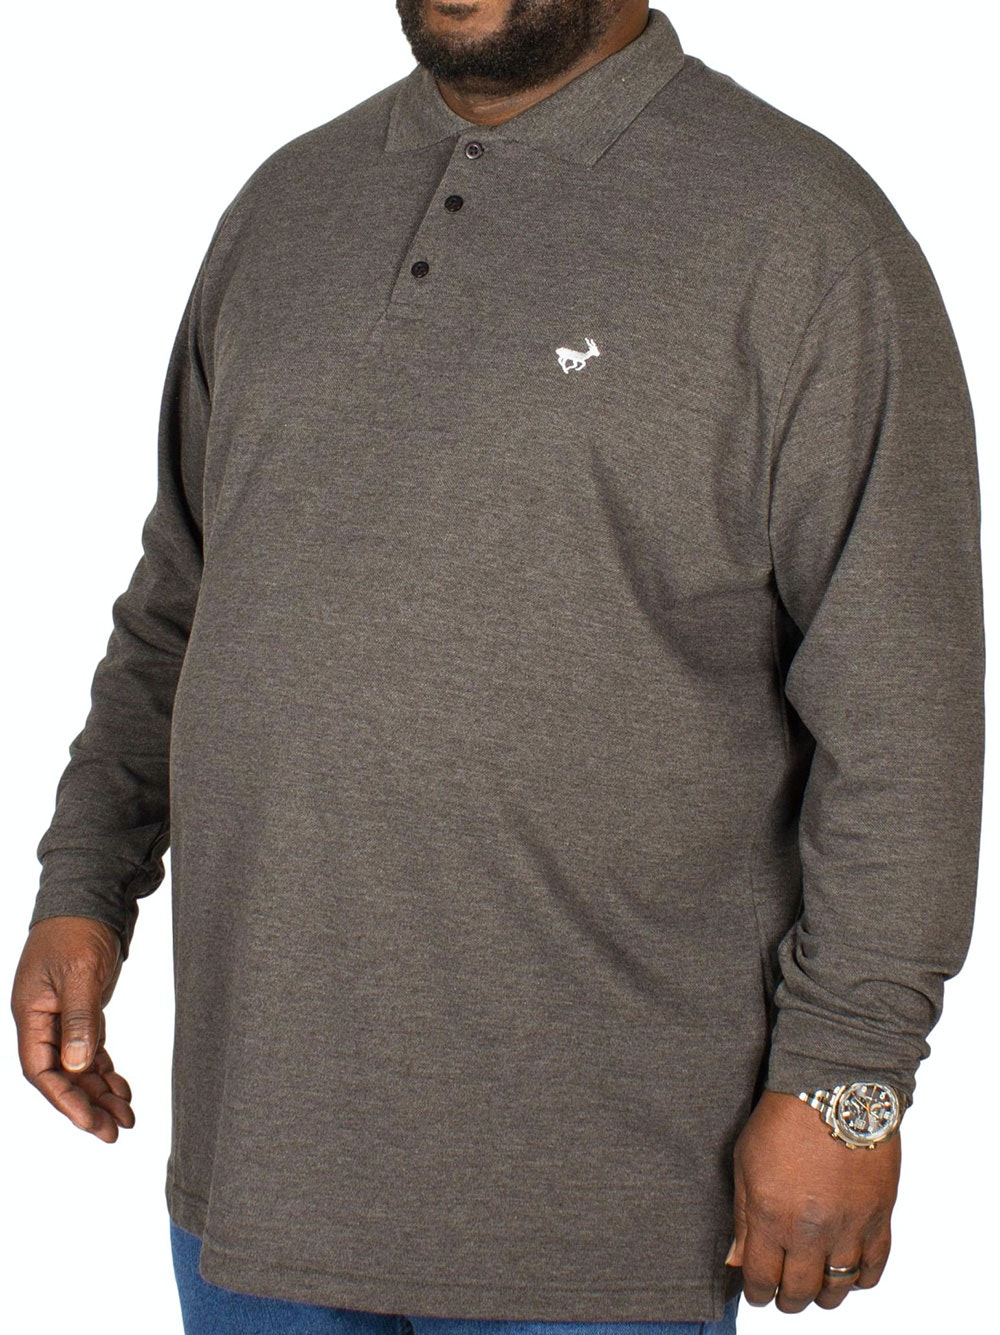 Bigdude Embroidered Long Sleeve Polo Shirt Charcoal